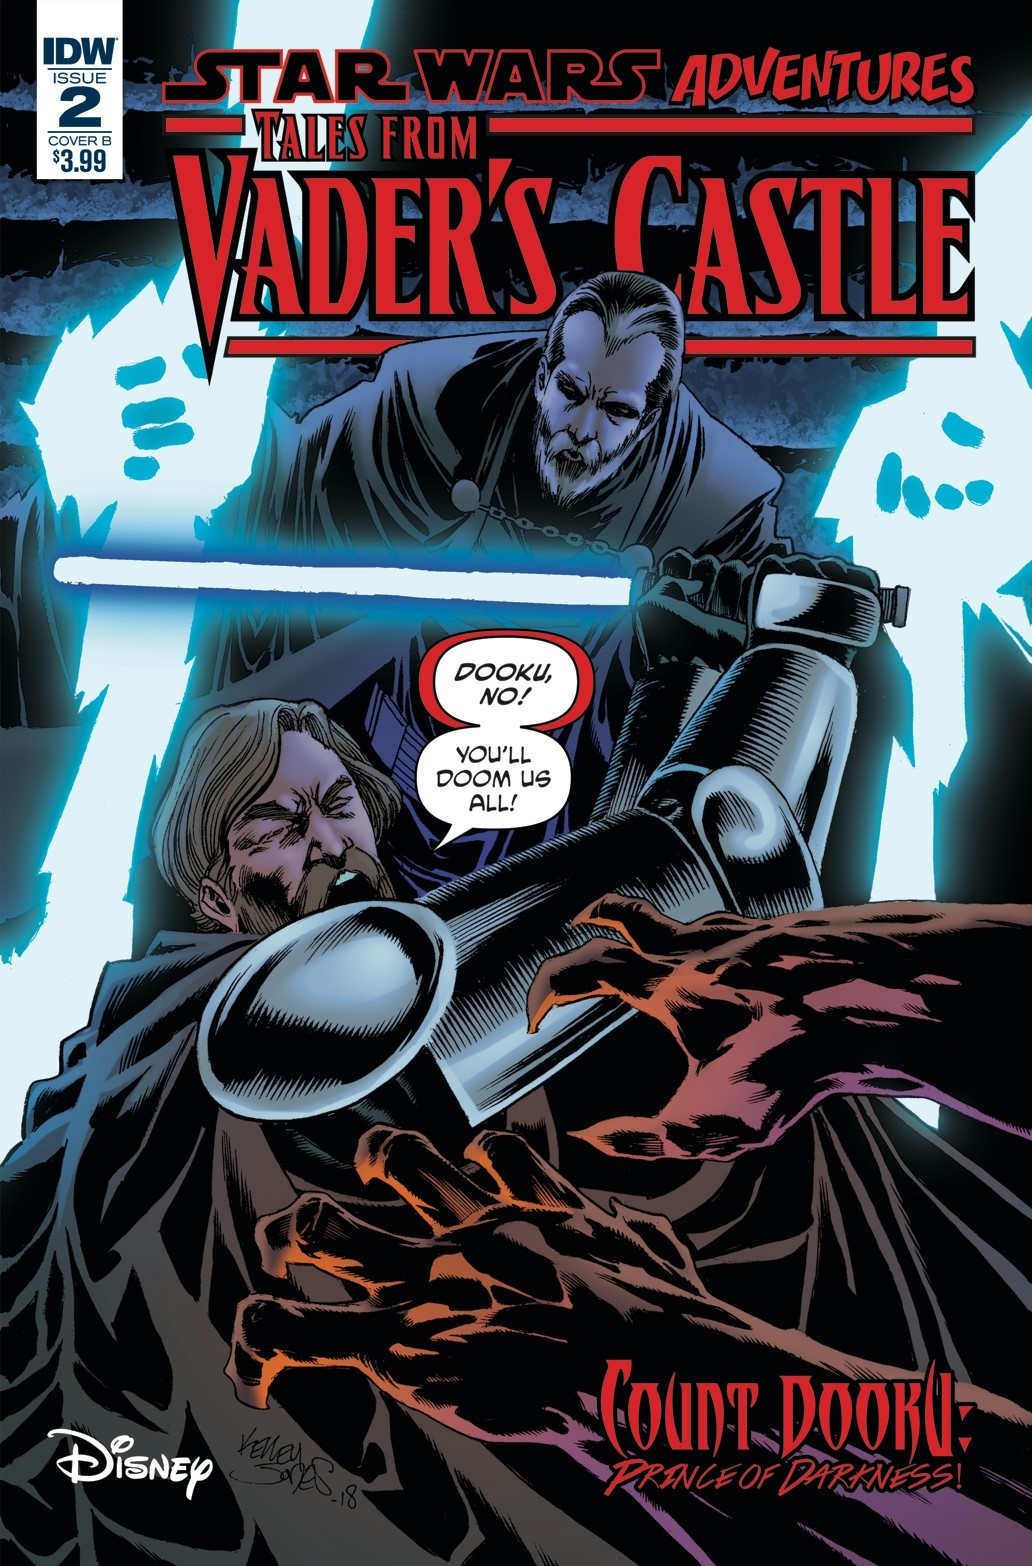 Star Wars Adventures: Tales from Vader's Castle #2 (Cover B by Kelley Jones) (10.10.2018)